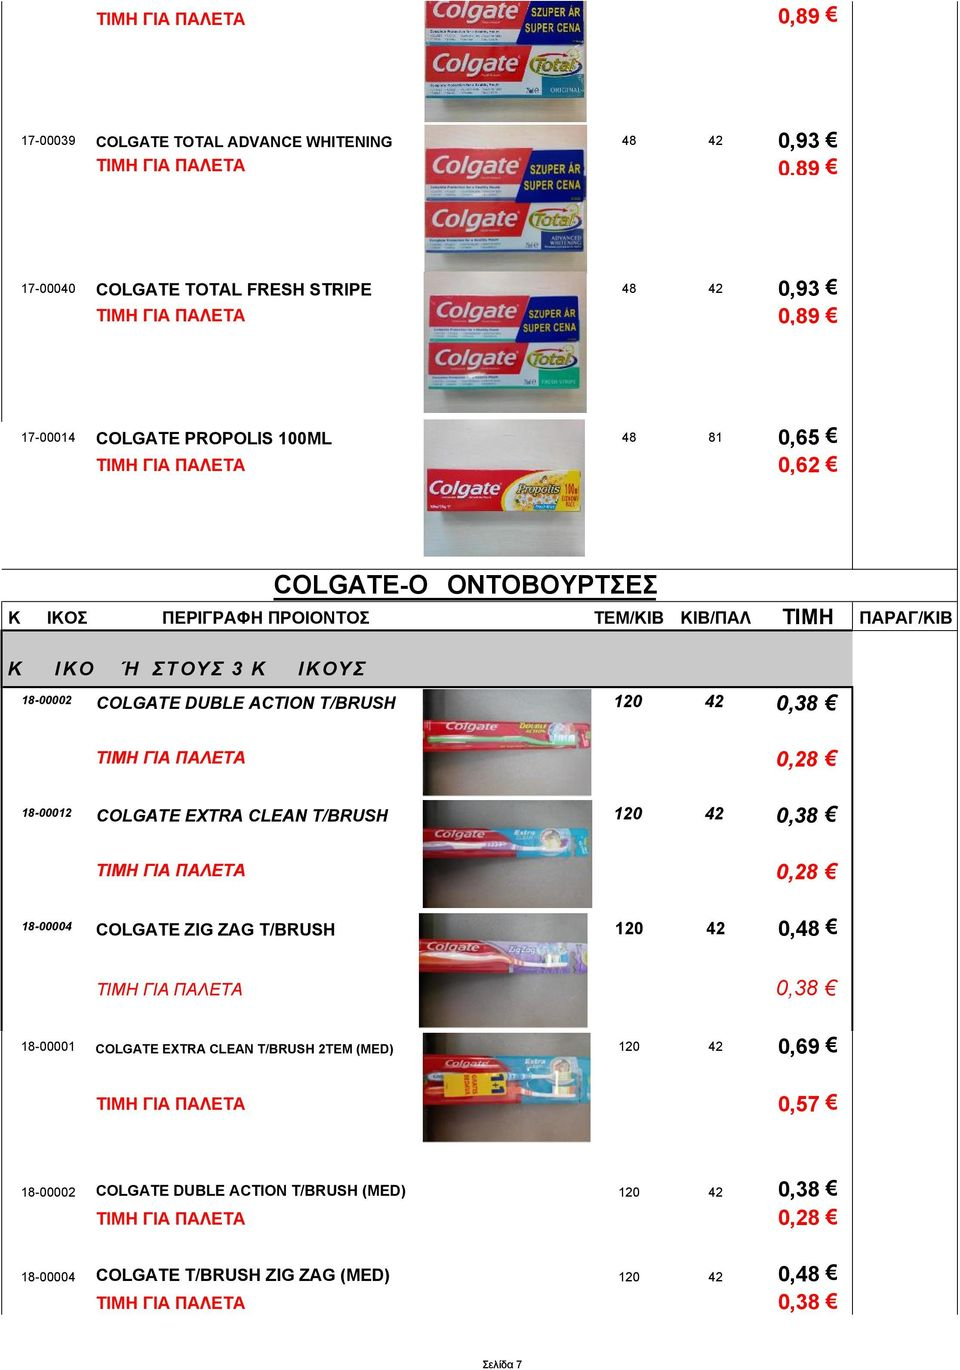 T/BRUSH 0 COLGATE ZIG ZAG T/BRUSH 0 COLGATE EXTRA CLEAN T/BRUSH 2TEM (MED) COLGATE DUBLE ACTION T/BRUSH (MED) 0 0 ΓΙΑ ΠΑΛΕΤΑ 18-00004 0,9 0,57 ΓΙΑ ΠΑΛΕΤΑ